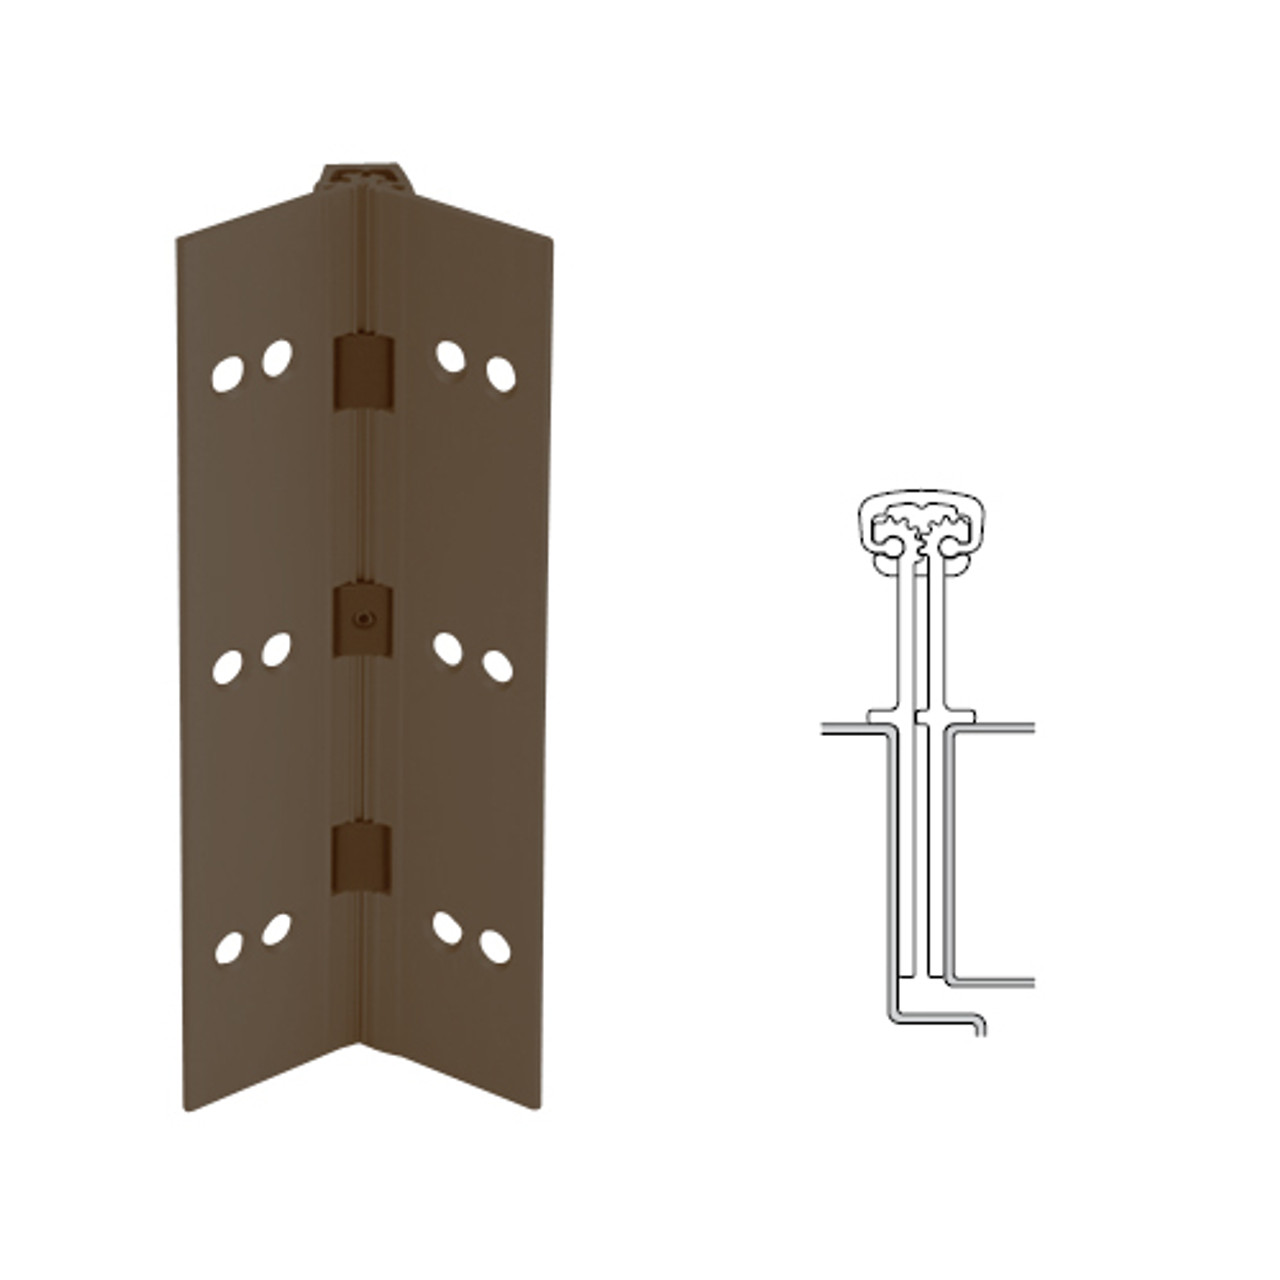 040XY-313AN-85-TEKWD IVES Full Mortise Continuous Geared Hinges with Wood Screws in Dark Bronze Anodized